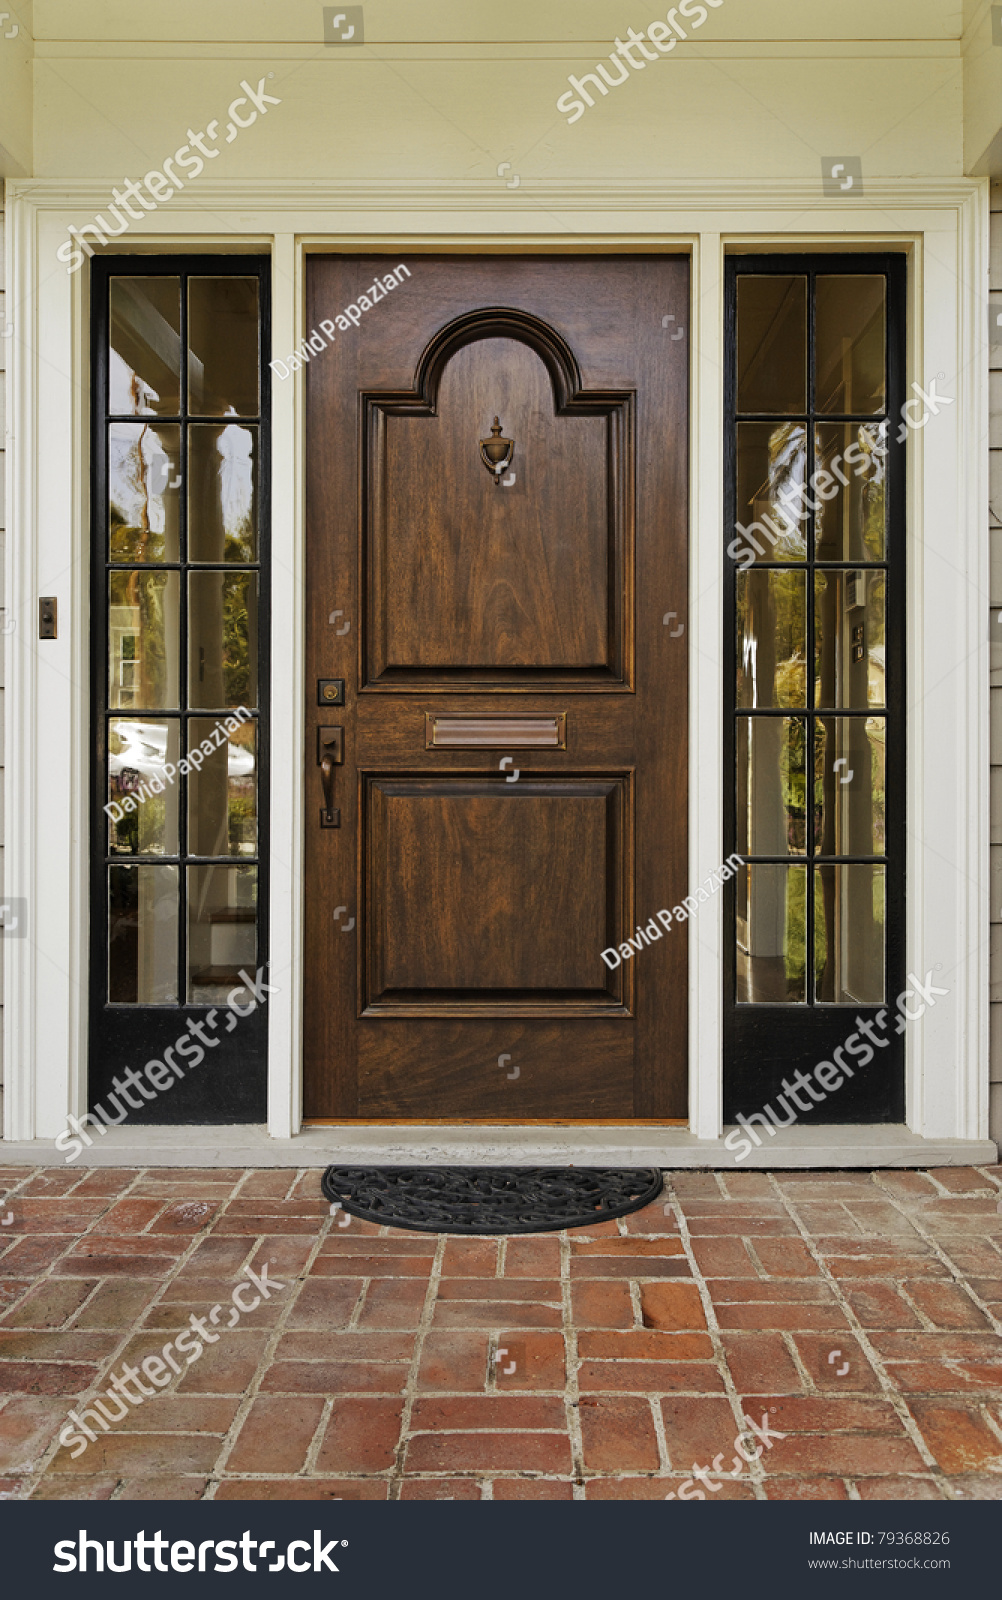 The Wooden Front Door Of A Home With Glass Panels To Each Side And Brick